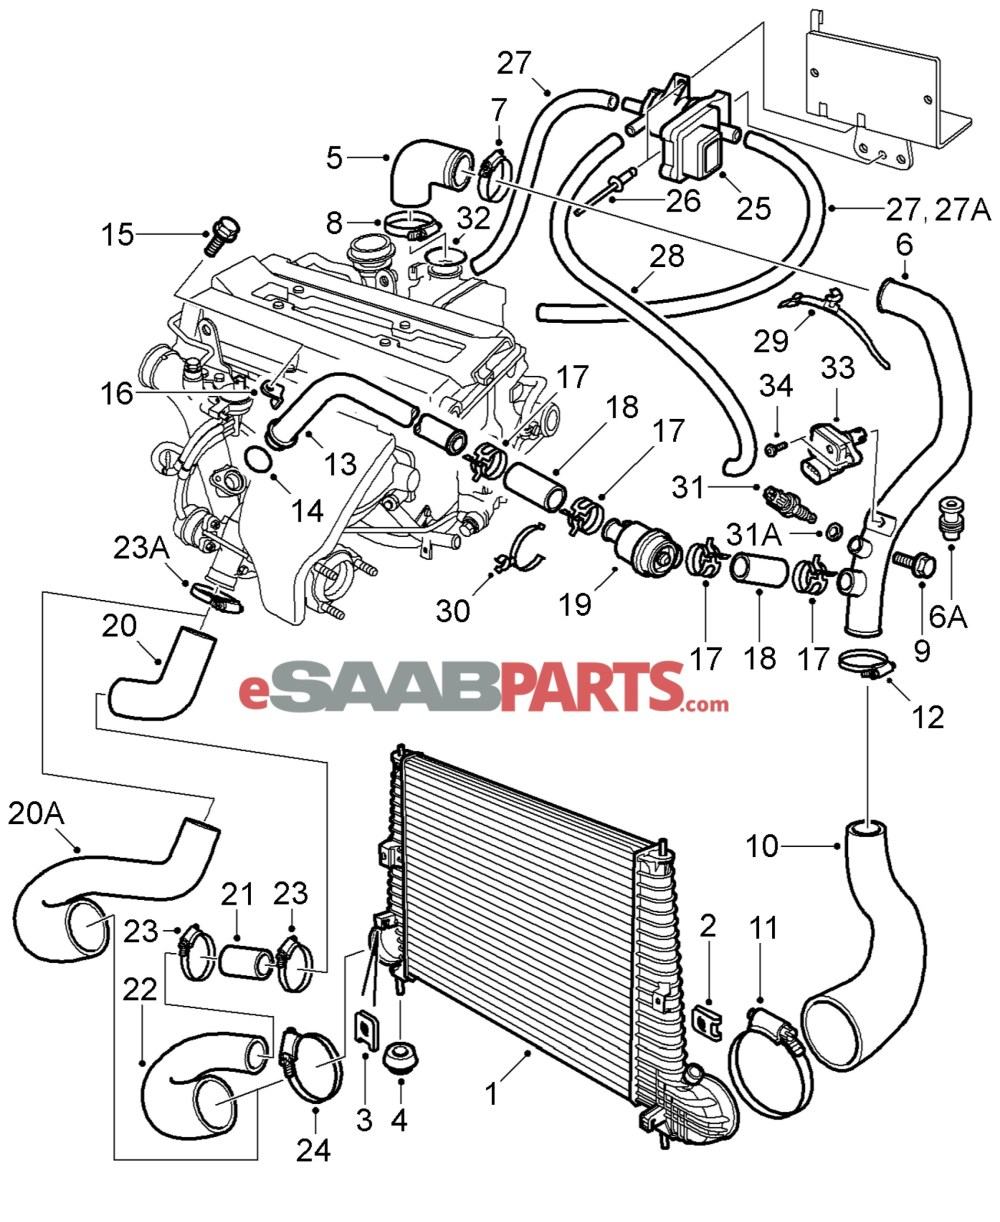 medium resolution of 2005 saab 9 5 fuse box diagram wiring diagram databasewiring diagram for saab